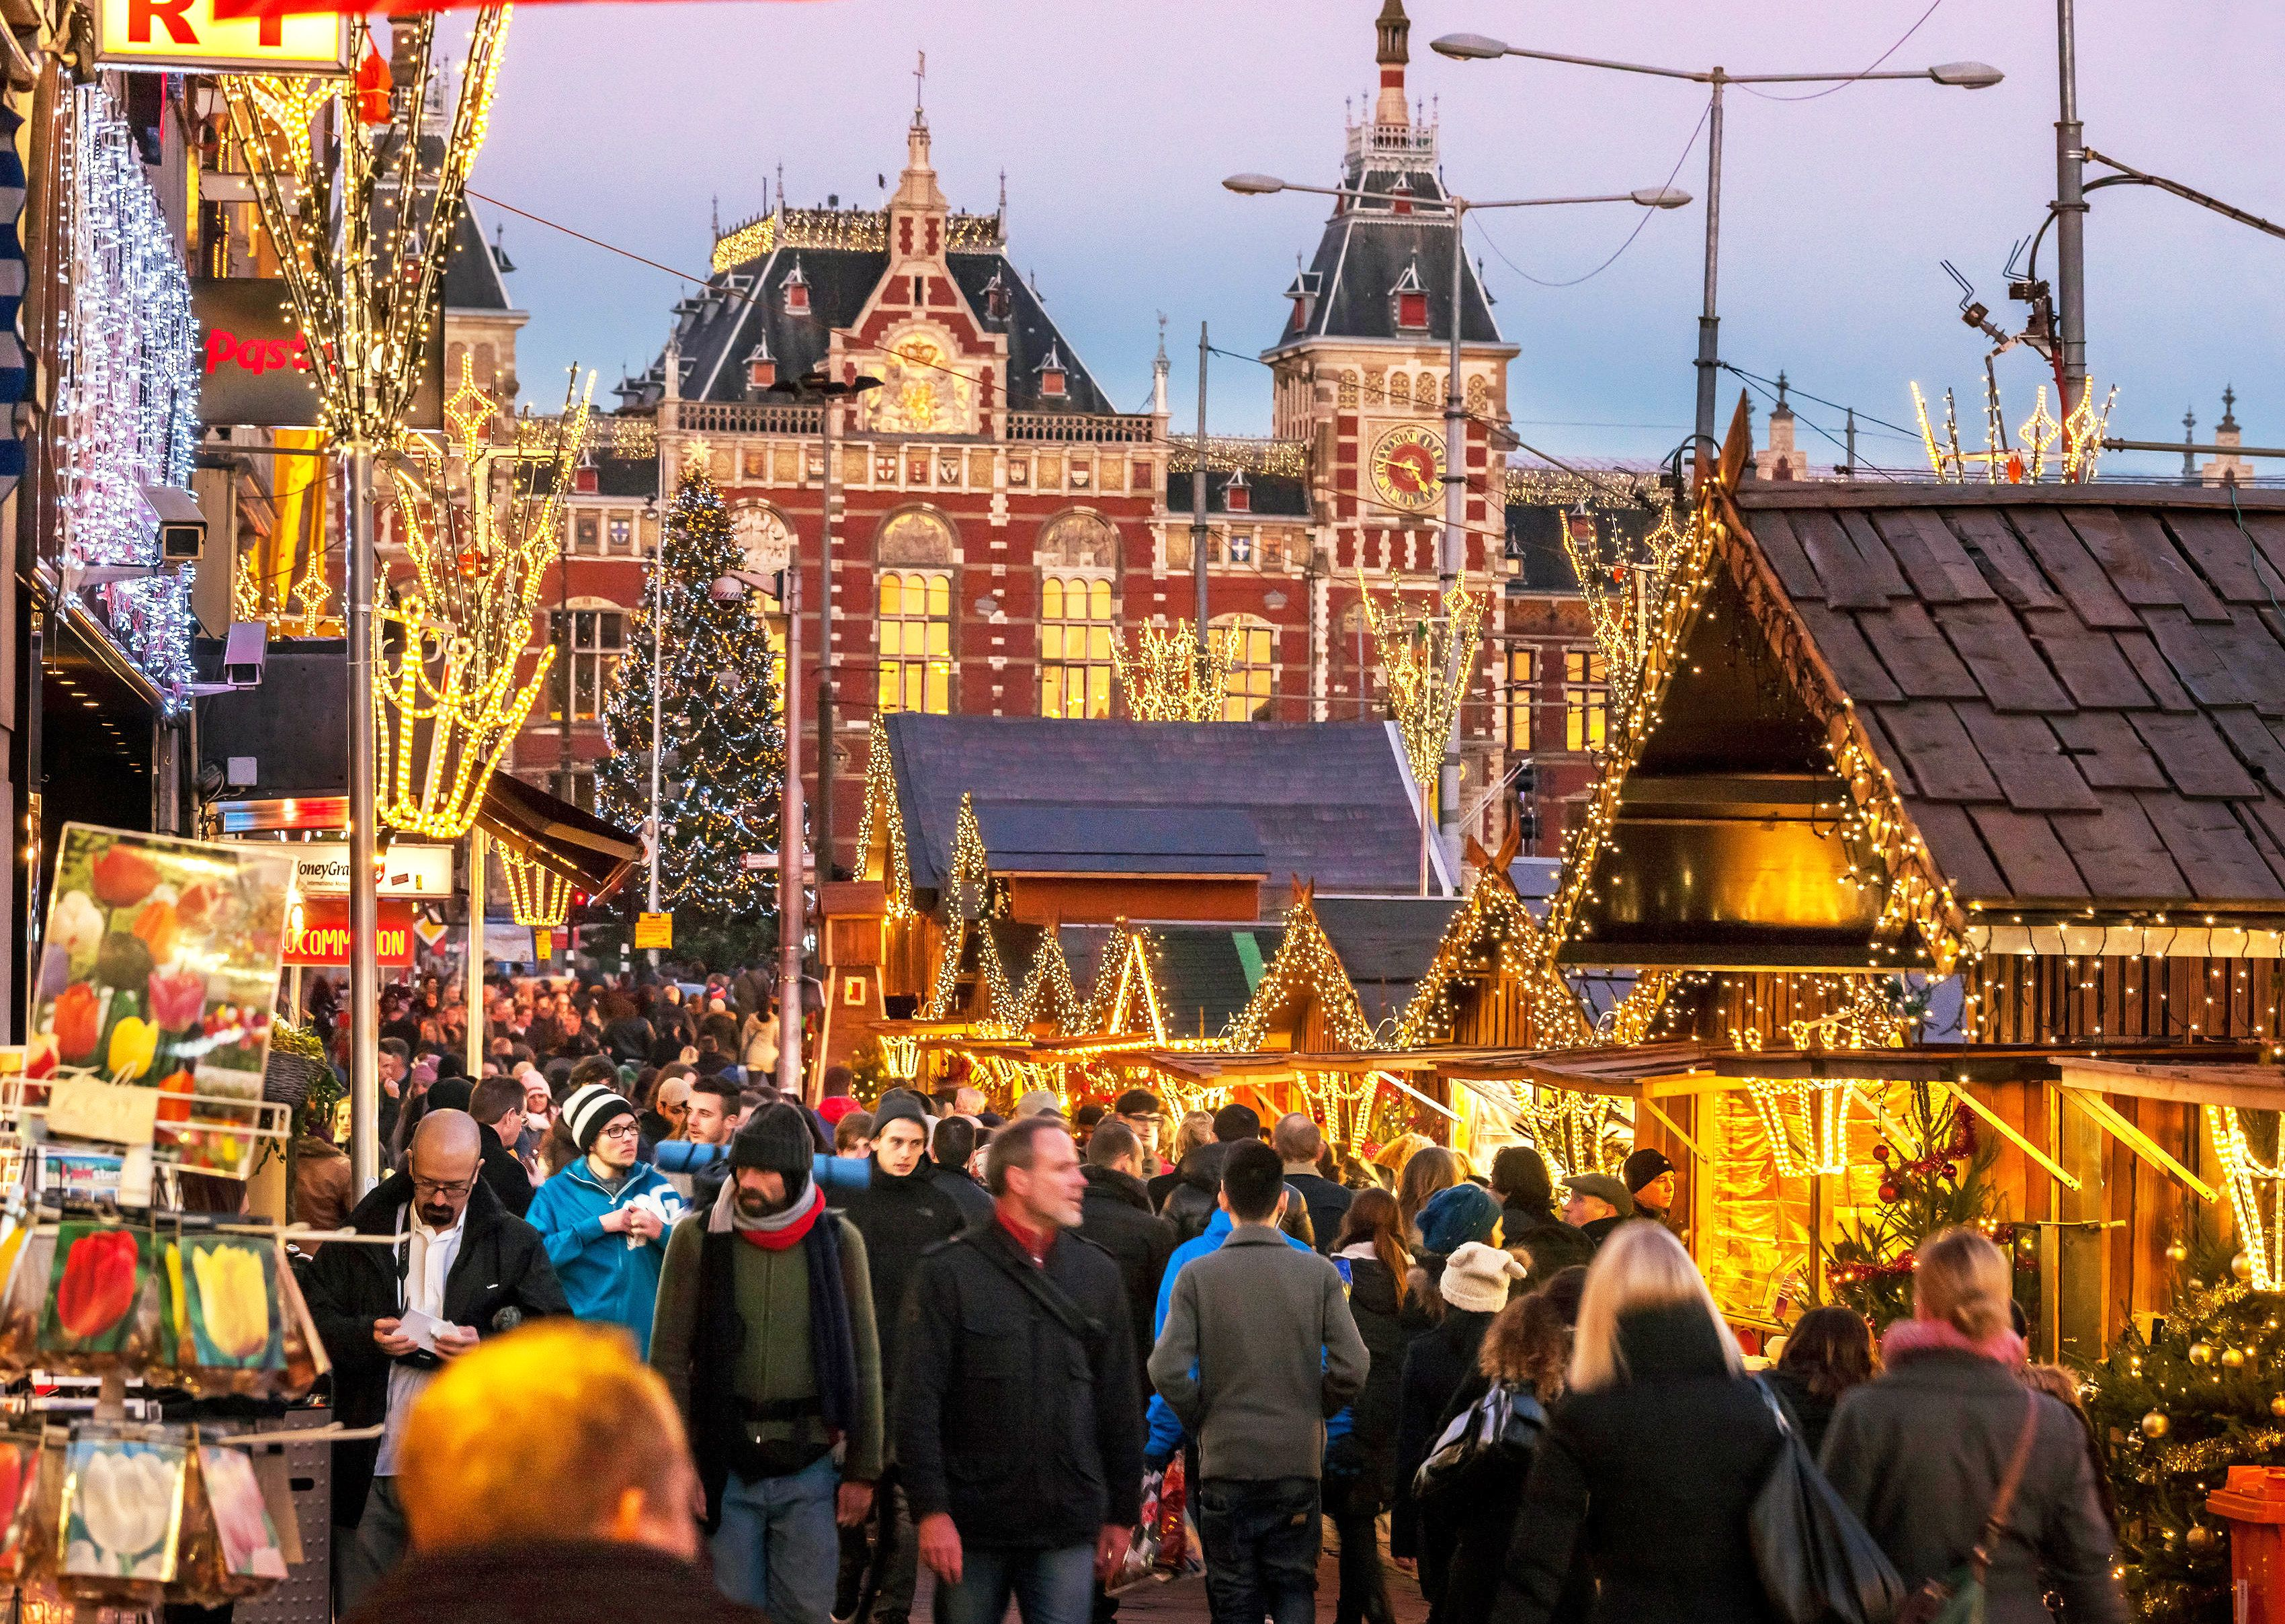 Holiday Market – Best Holiday Markets Including German Christmas Markets | Architectural Digest